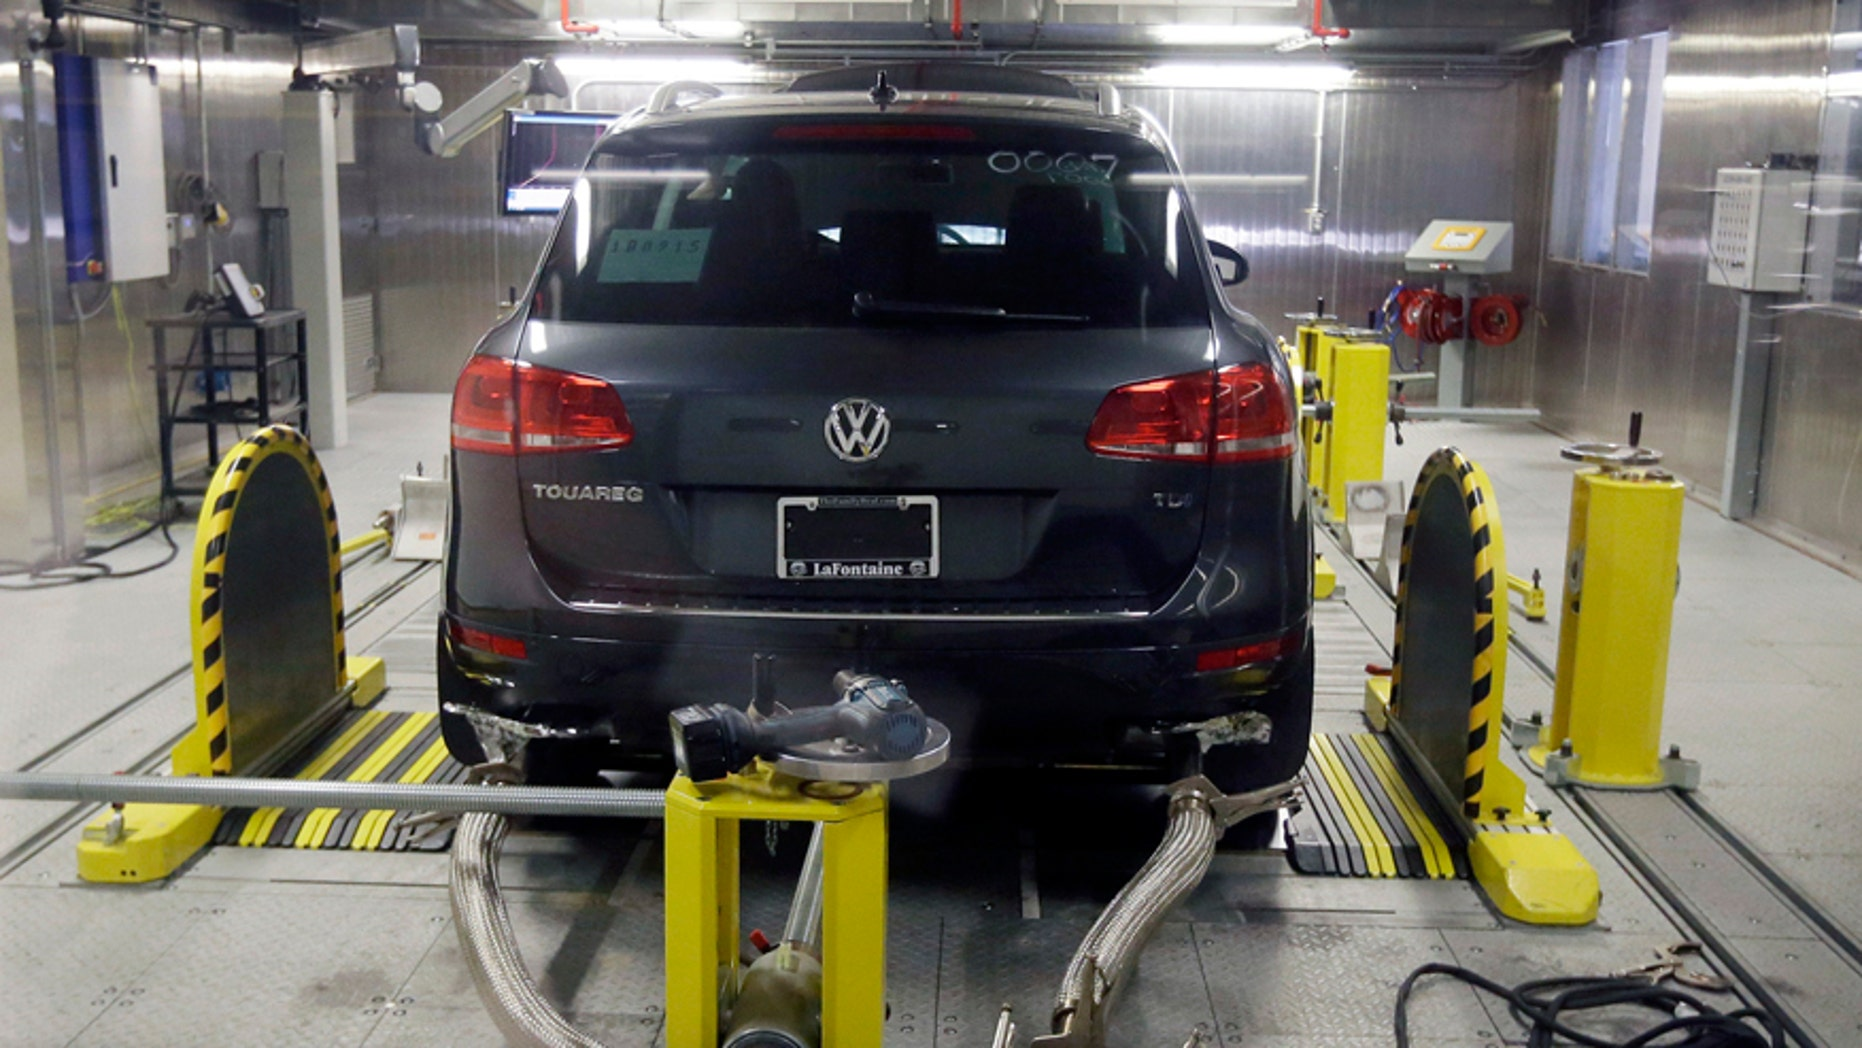 FILE - In this Oct. 13, 2015 file photo, a Volkswagen Touareg diesel is tested in the Environmental Protection Agency's cold temperature test facility in Ann Arbor, Mich. The U.S. government says Volkswagen cheated a second time on emissions tests, programming about 10,000 cars with larger diesel engines, including the 2014 Touareg, 2015 Porsche Cayenne and the 2016 Audi A6 Quattro, A7 Quattro, A8 and Q5, to emit fewer pollutants during testing than in real-world driving conditions. (AP Photo/Carlos Osorio, File)